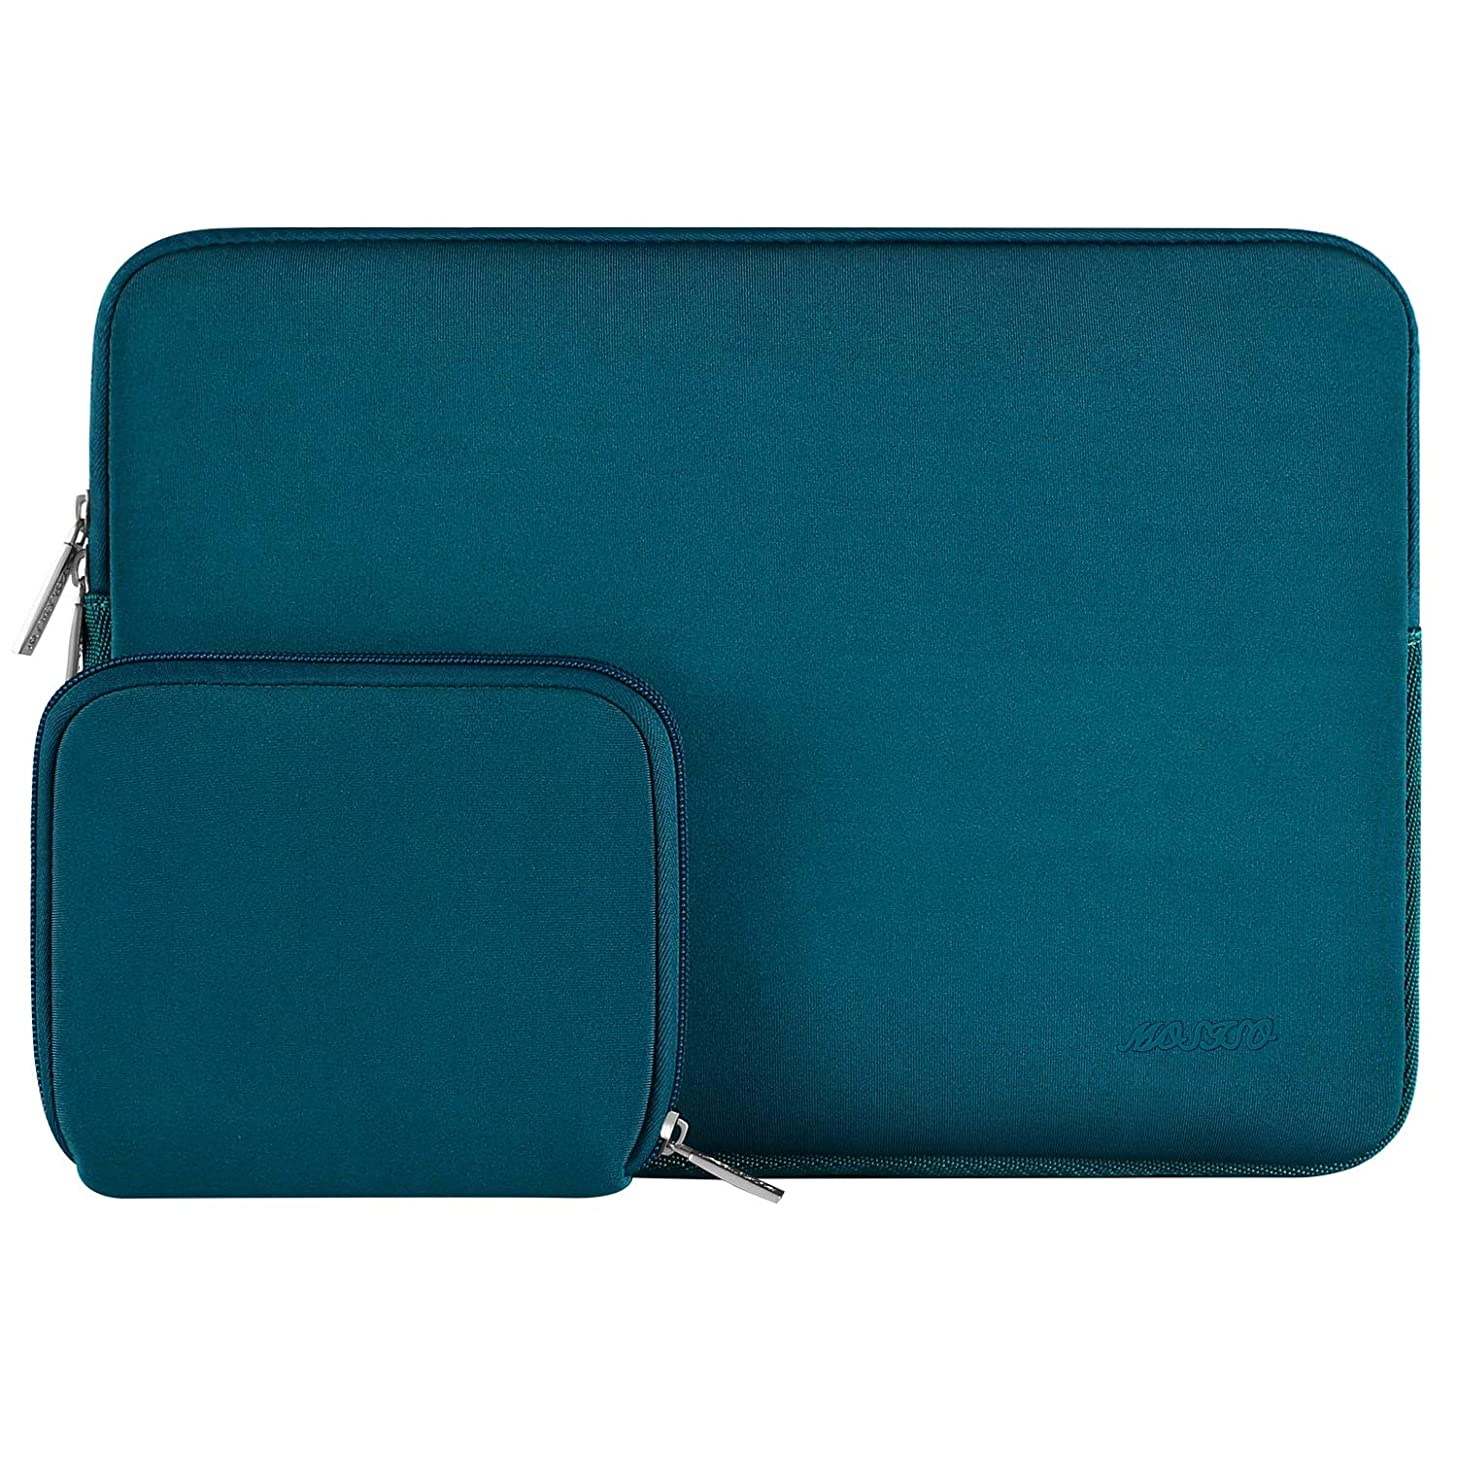 MOSISO Water Repellent Neoprene Sleeve Bag Cover Compatible 13-13.3 Inch Laptop with Small Case, Deep Teal